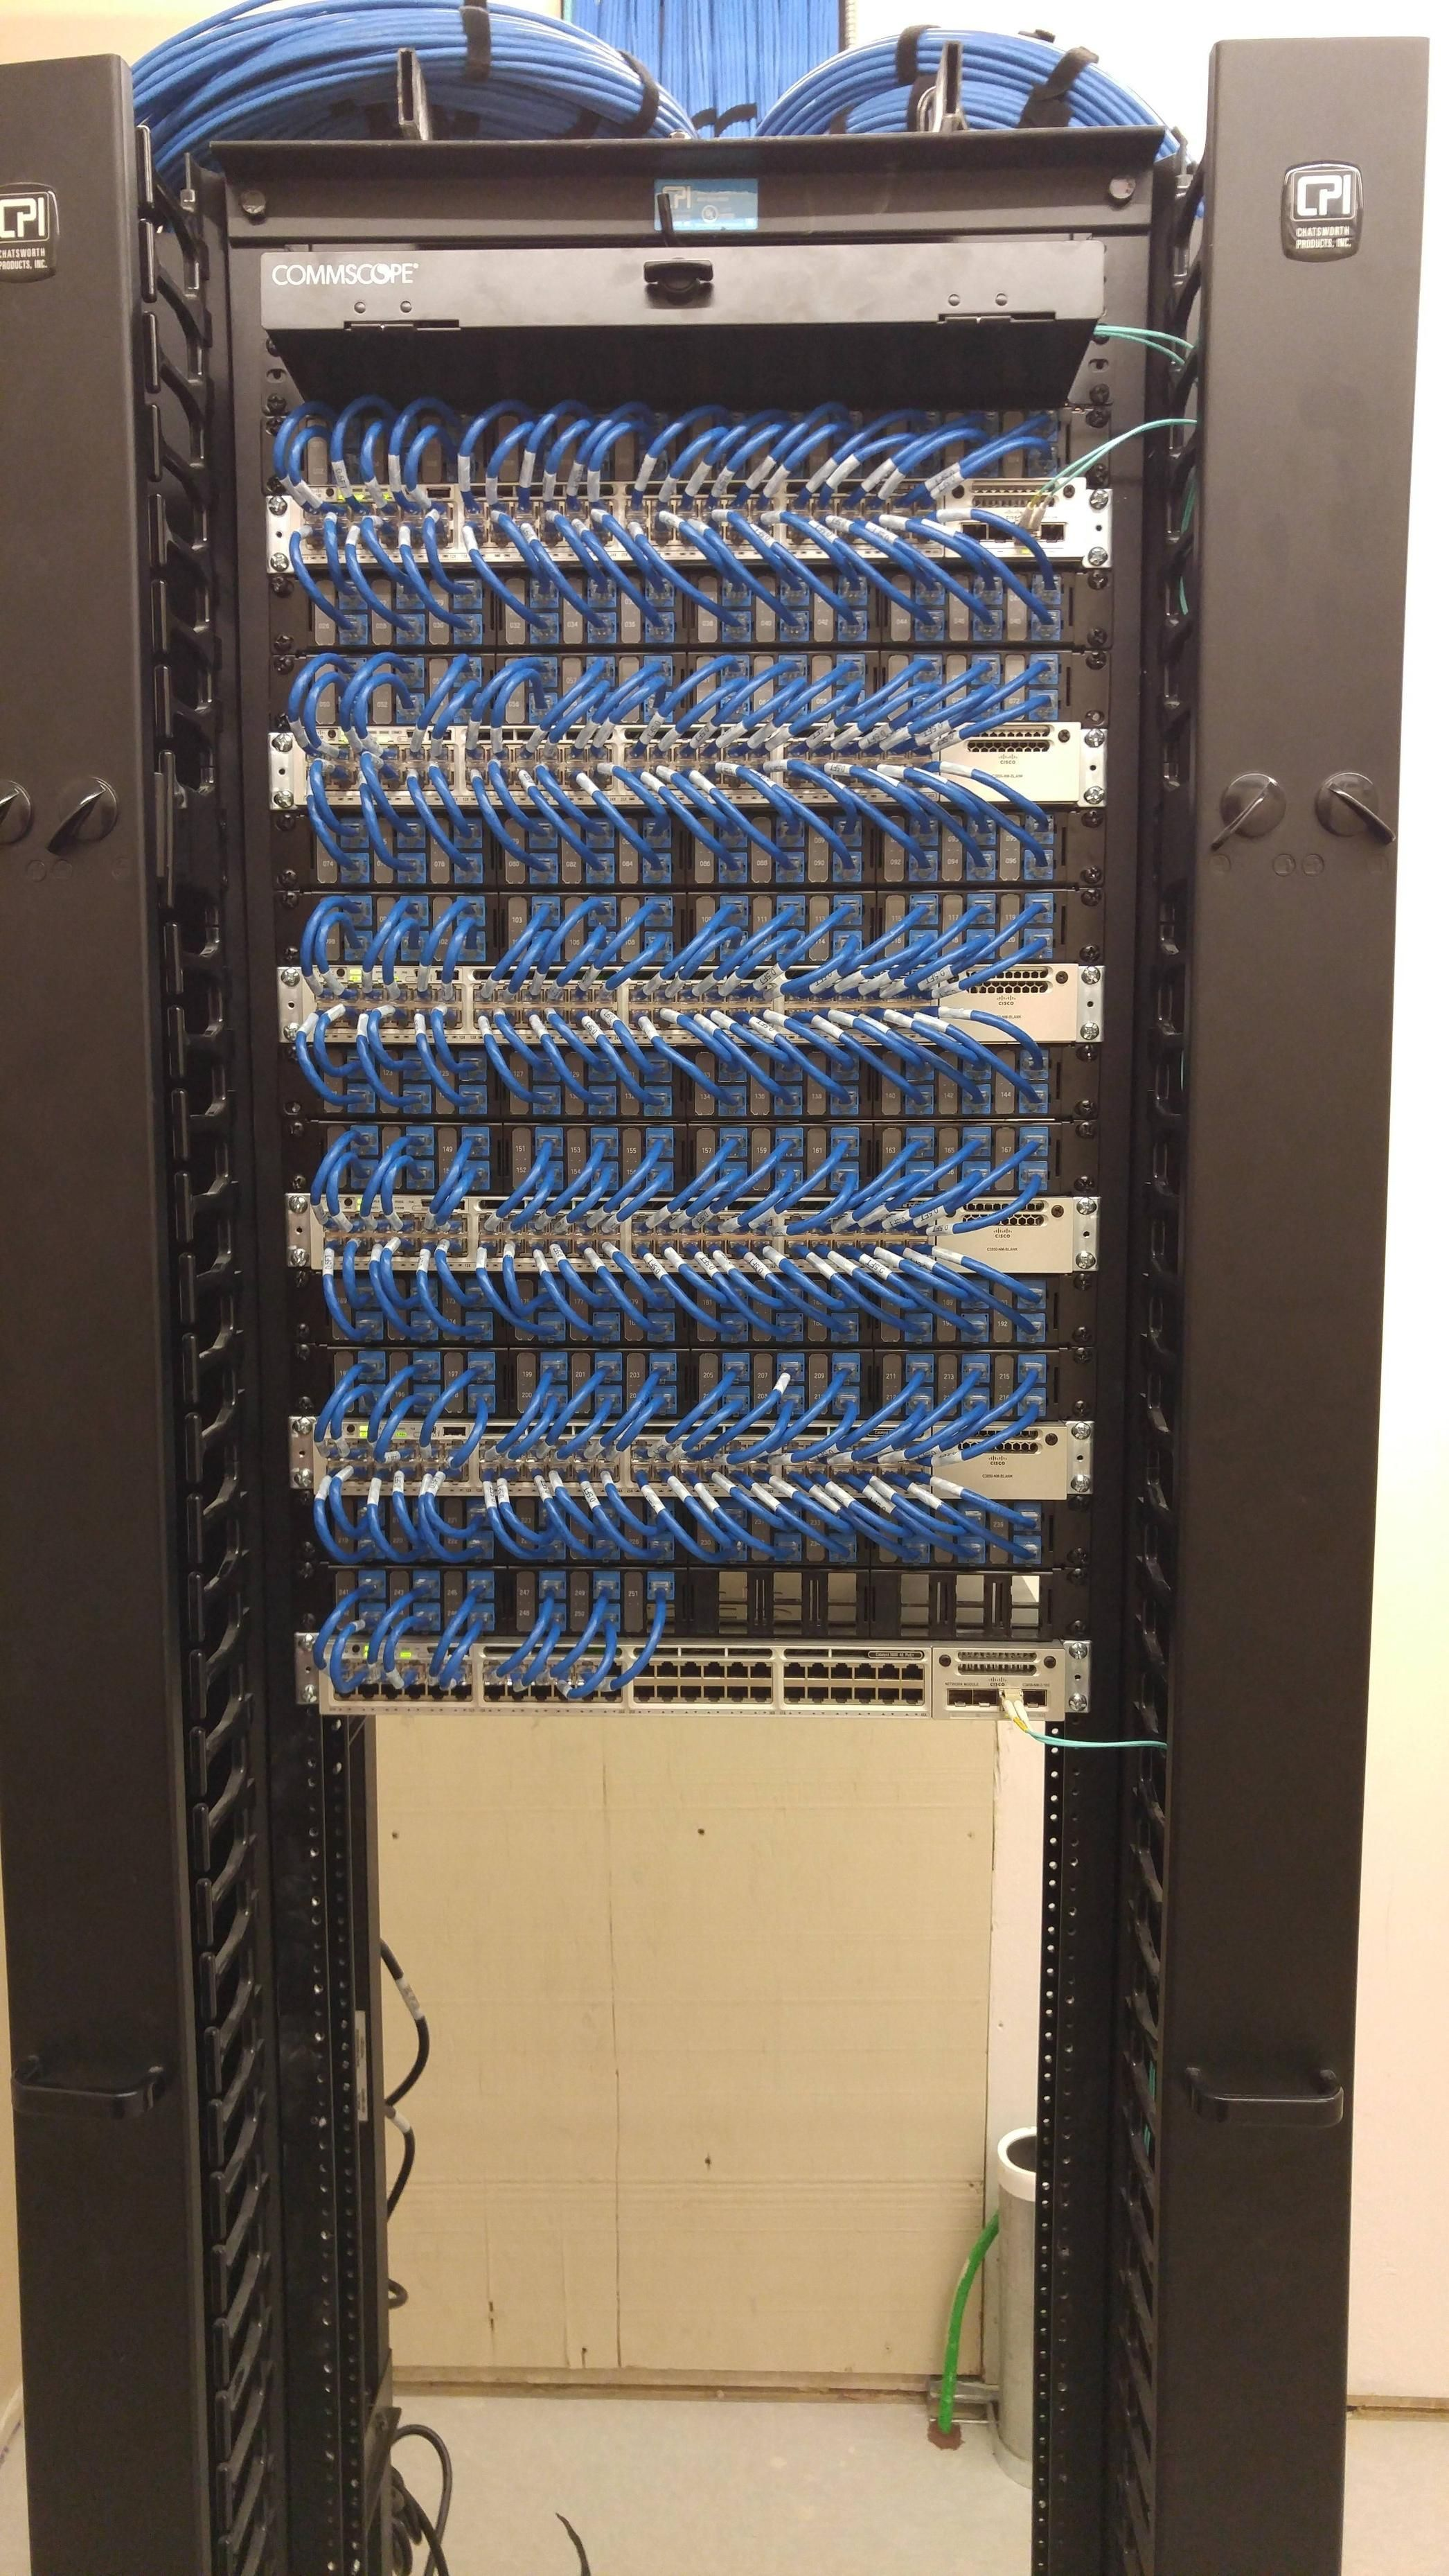 hight resolution of new idf closets network rack it network network cable server cabinet server